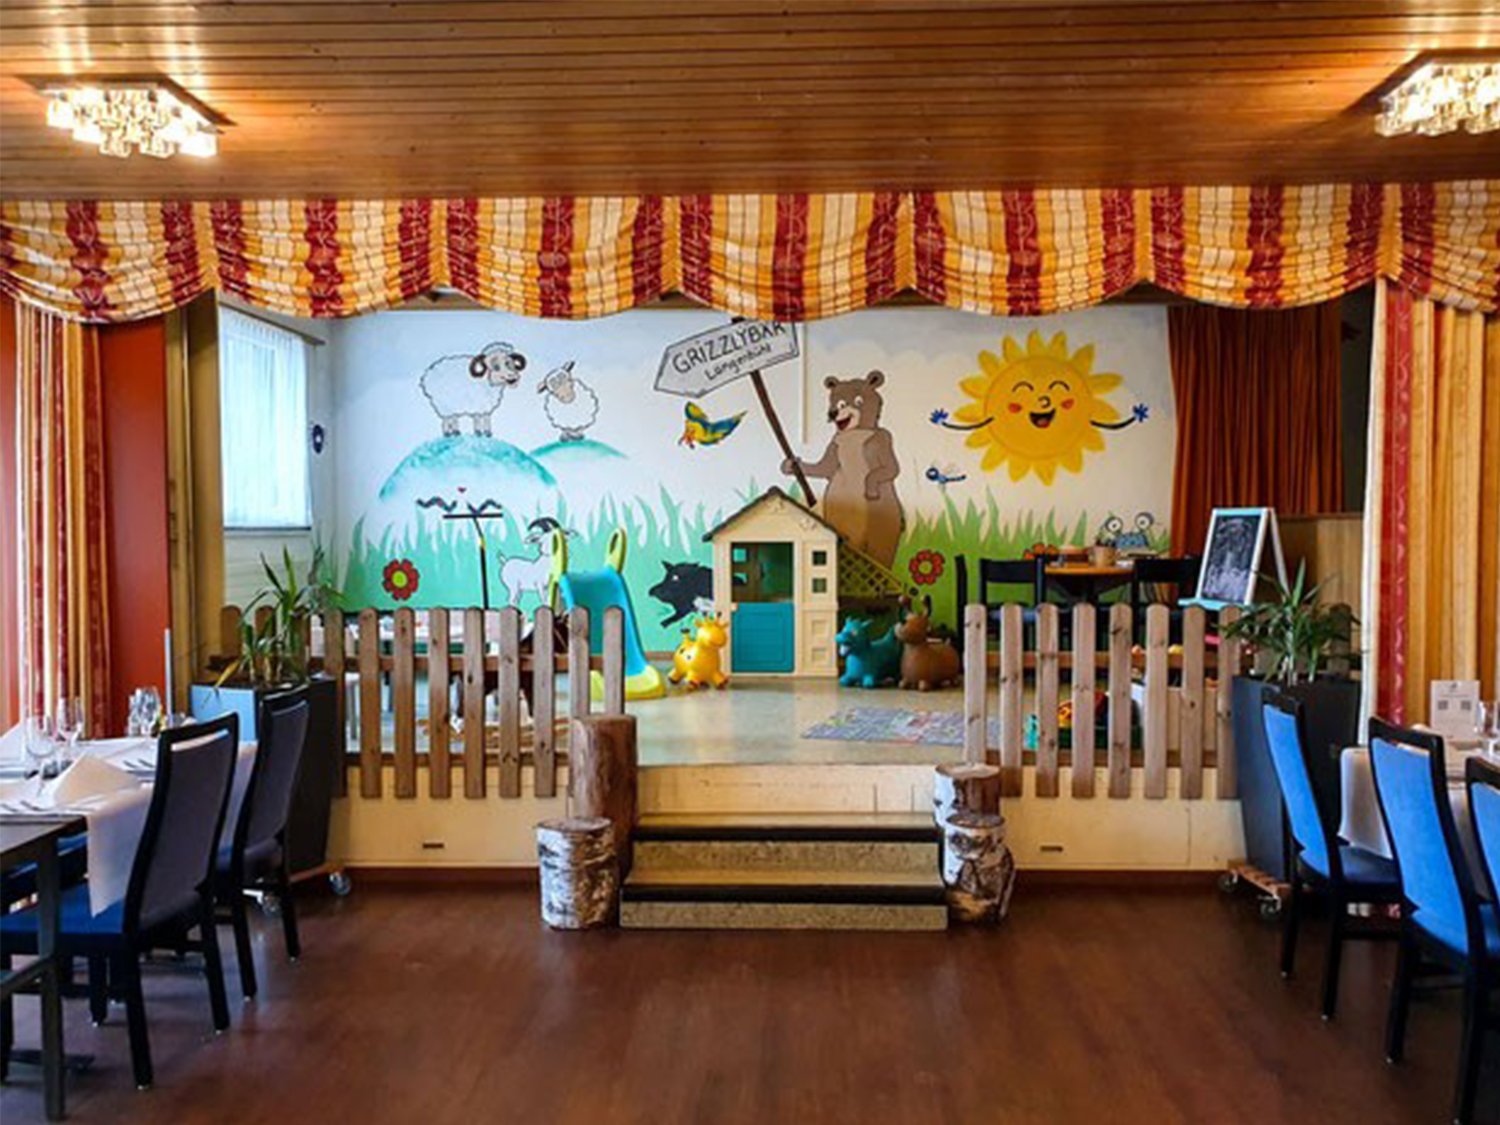 Children's play corner with painted wall